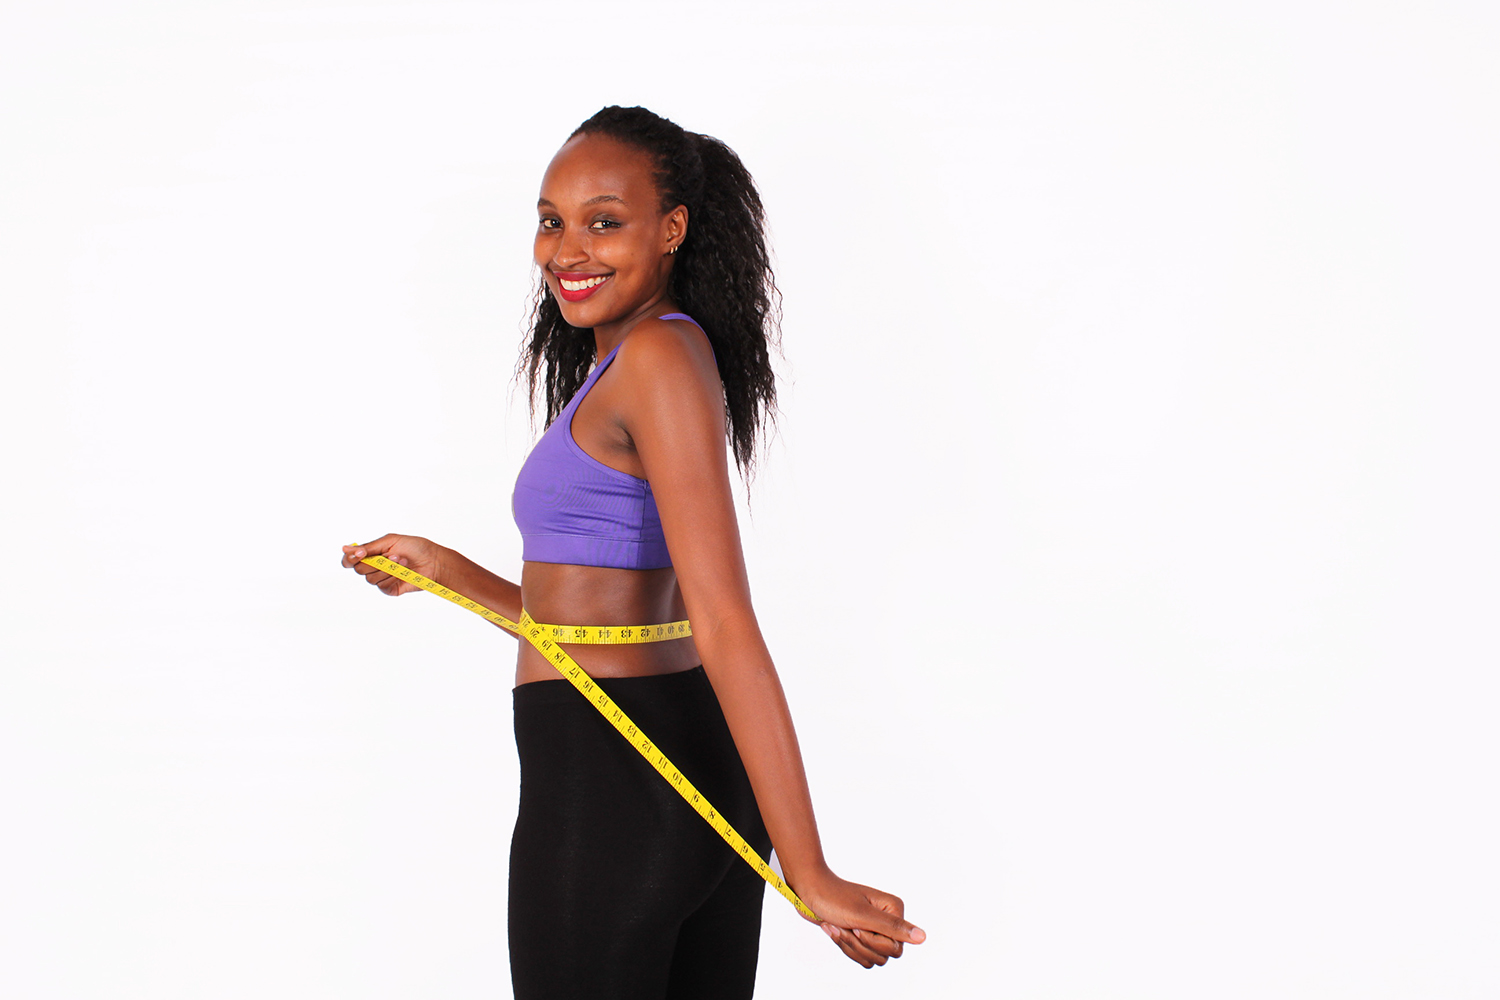 Sporty woman measuring waist size with tape measure